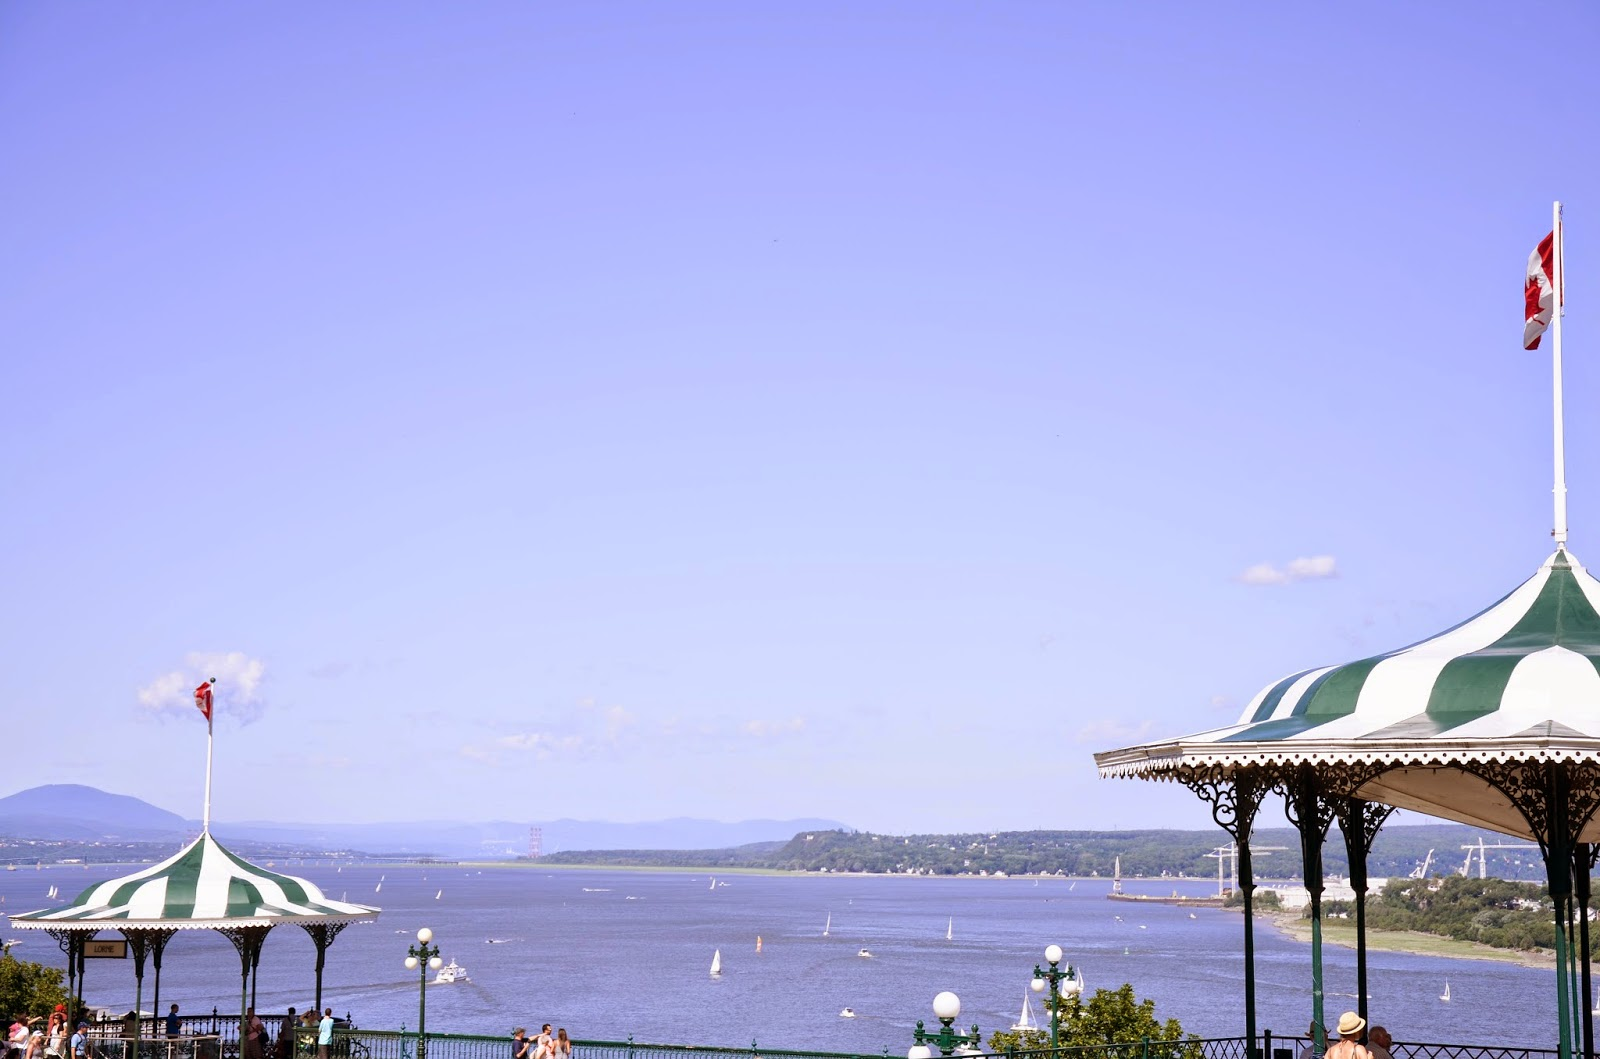 Historic Gazebos overlooking the Saint Lawrence River, Quebec City